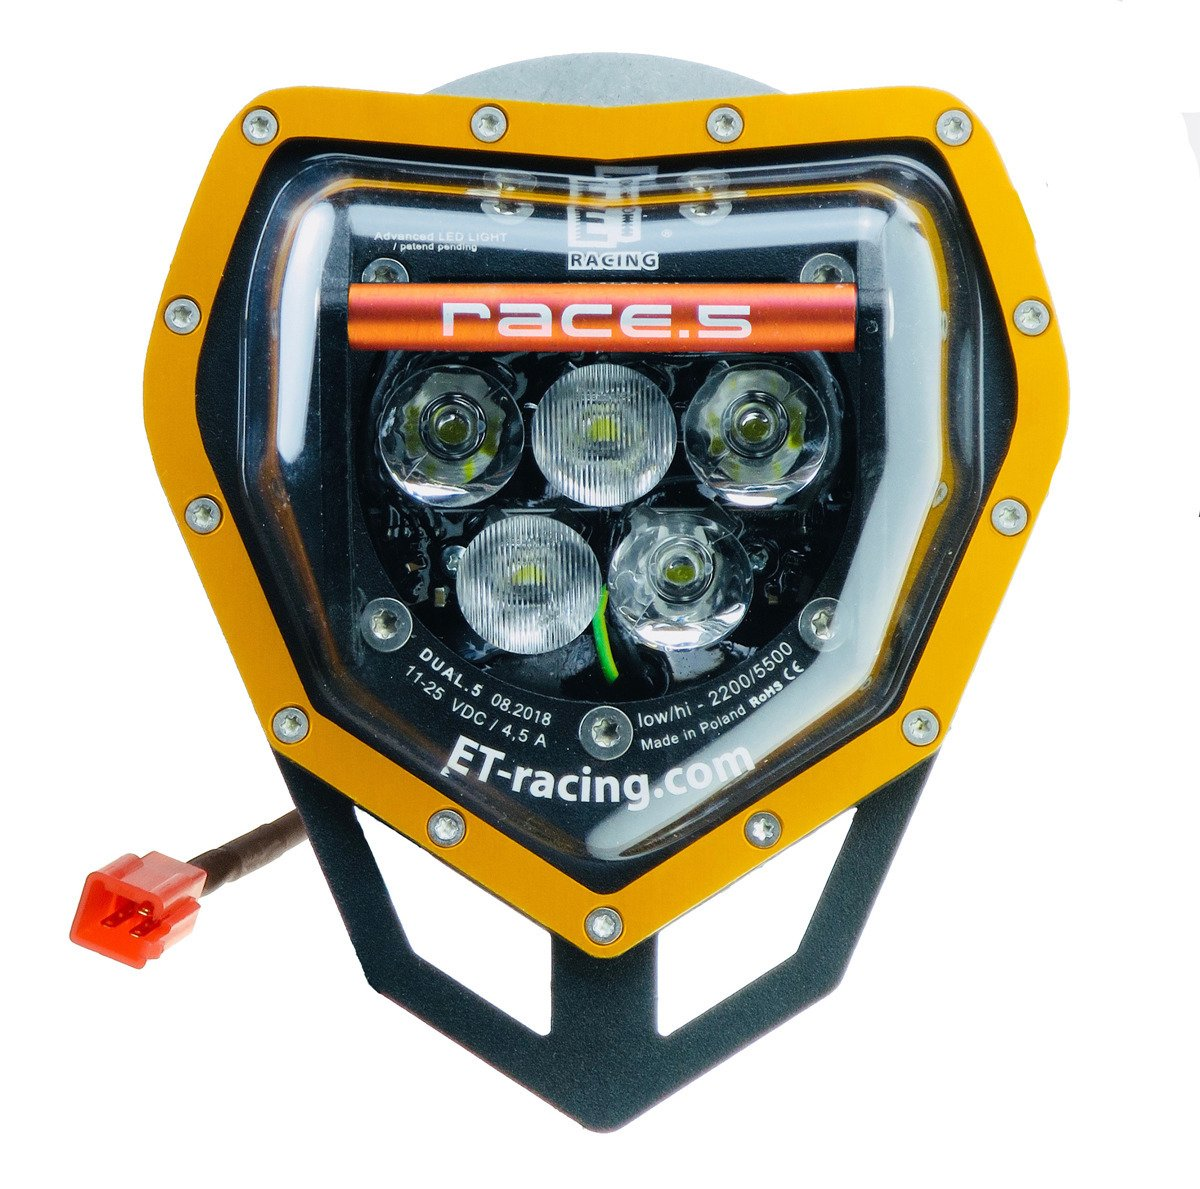 Led Lamp Race.5 KTM 2008-13